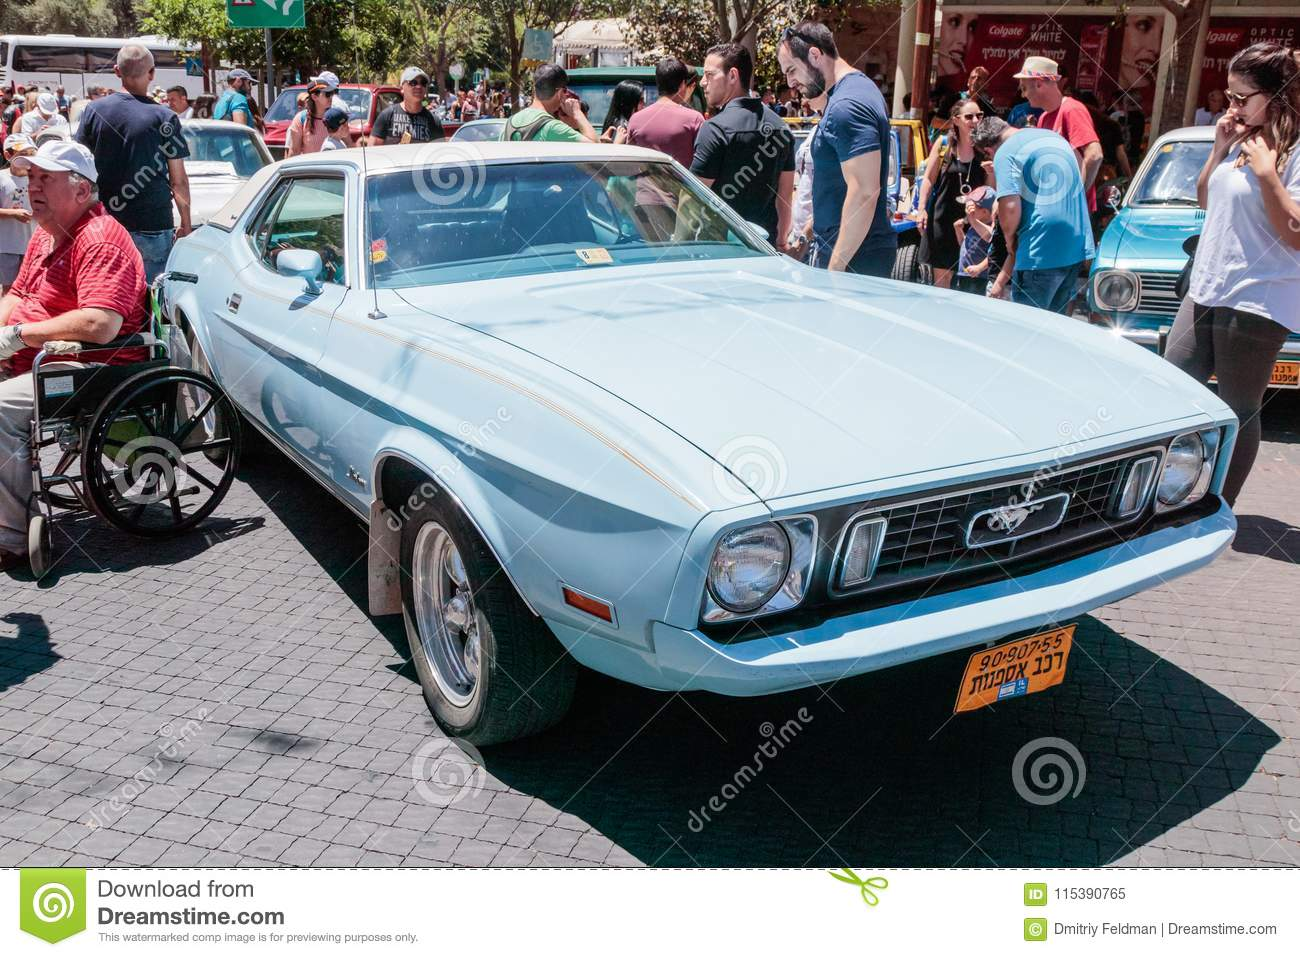 Karmiel israel may 31 2017 old ford mustang at an exhibition of old cars in the karmiel city